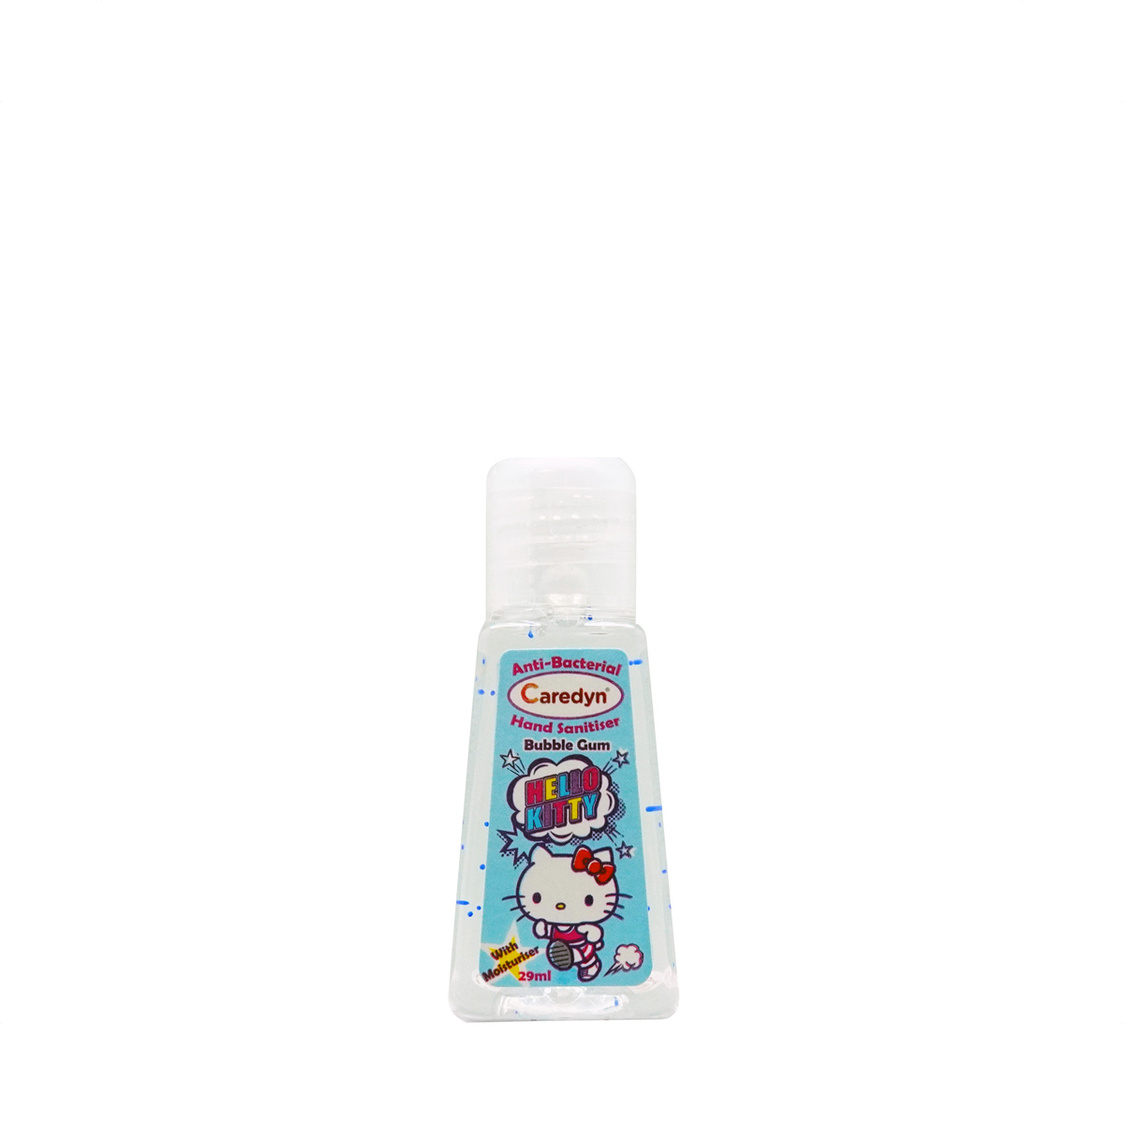 Hello Kitty Antibacterial Handsanitiser Bubblegum 29ml